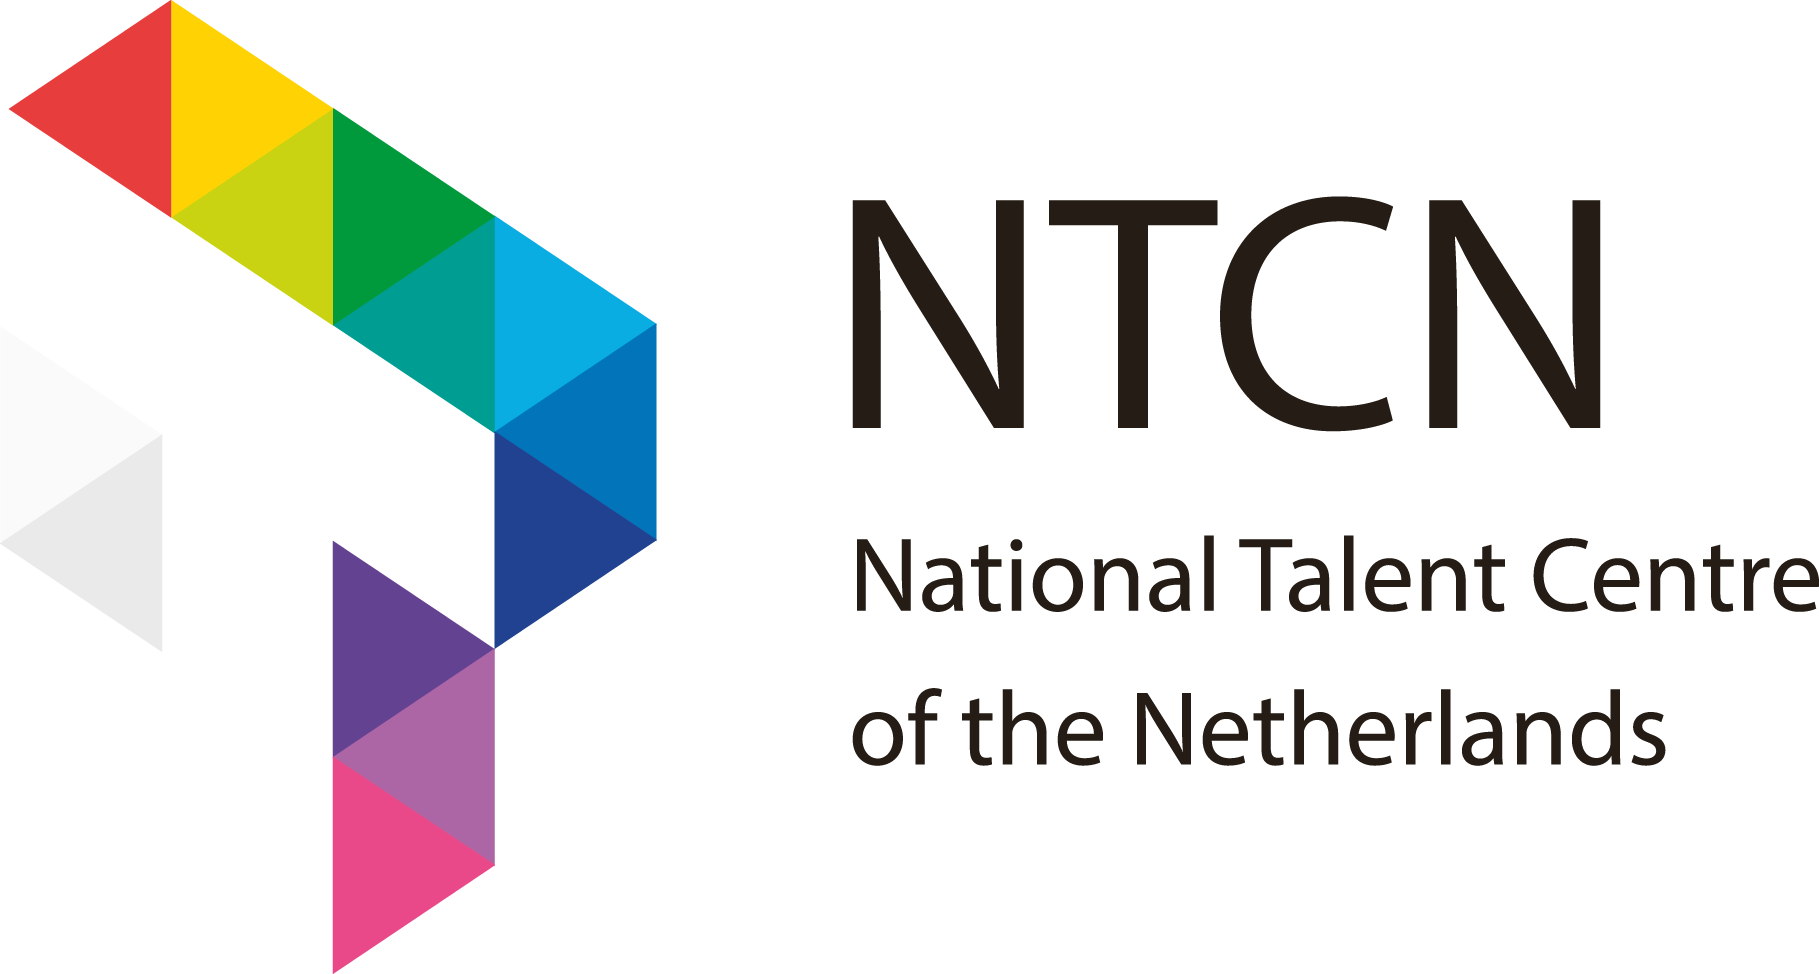 Natonal Talent Center of the Netherlands